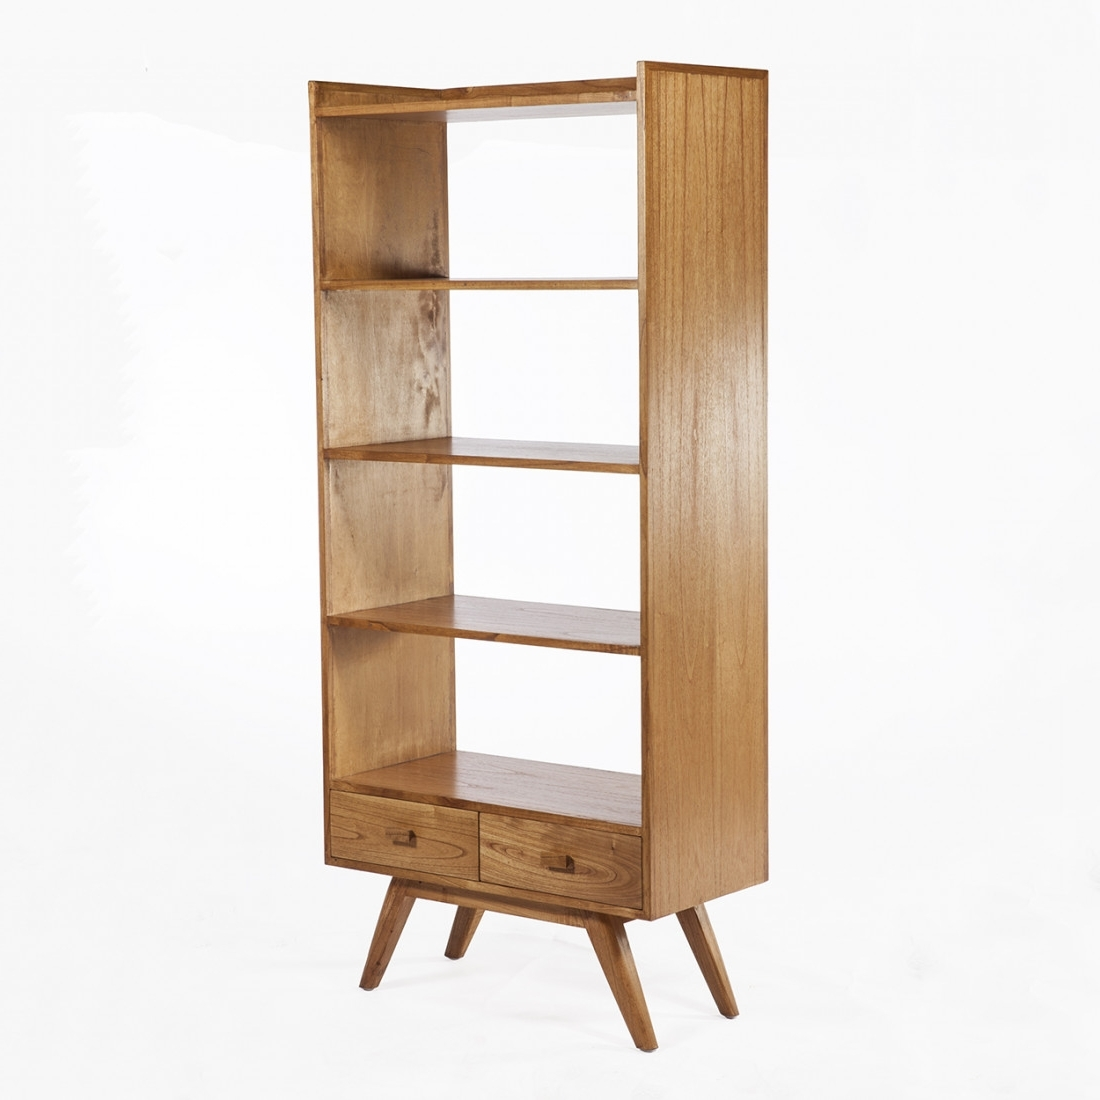 Furniture: Mid Century Modern Tall 4 Tier Shelving Bookcase With 2 Pertaining To Trendy Mid Century Bookcases (View 7 of 15)